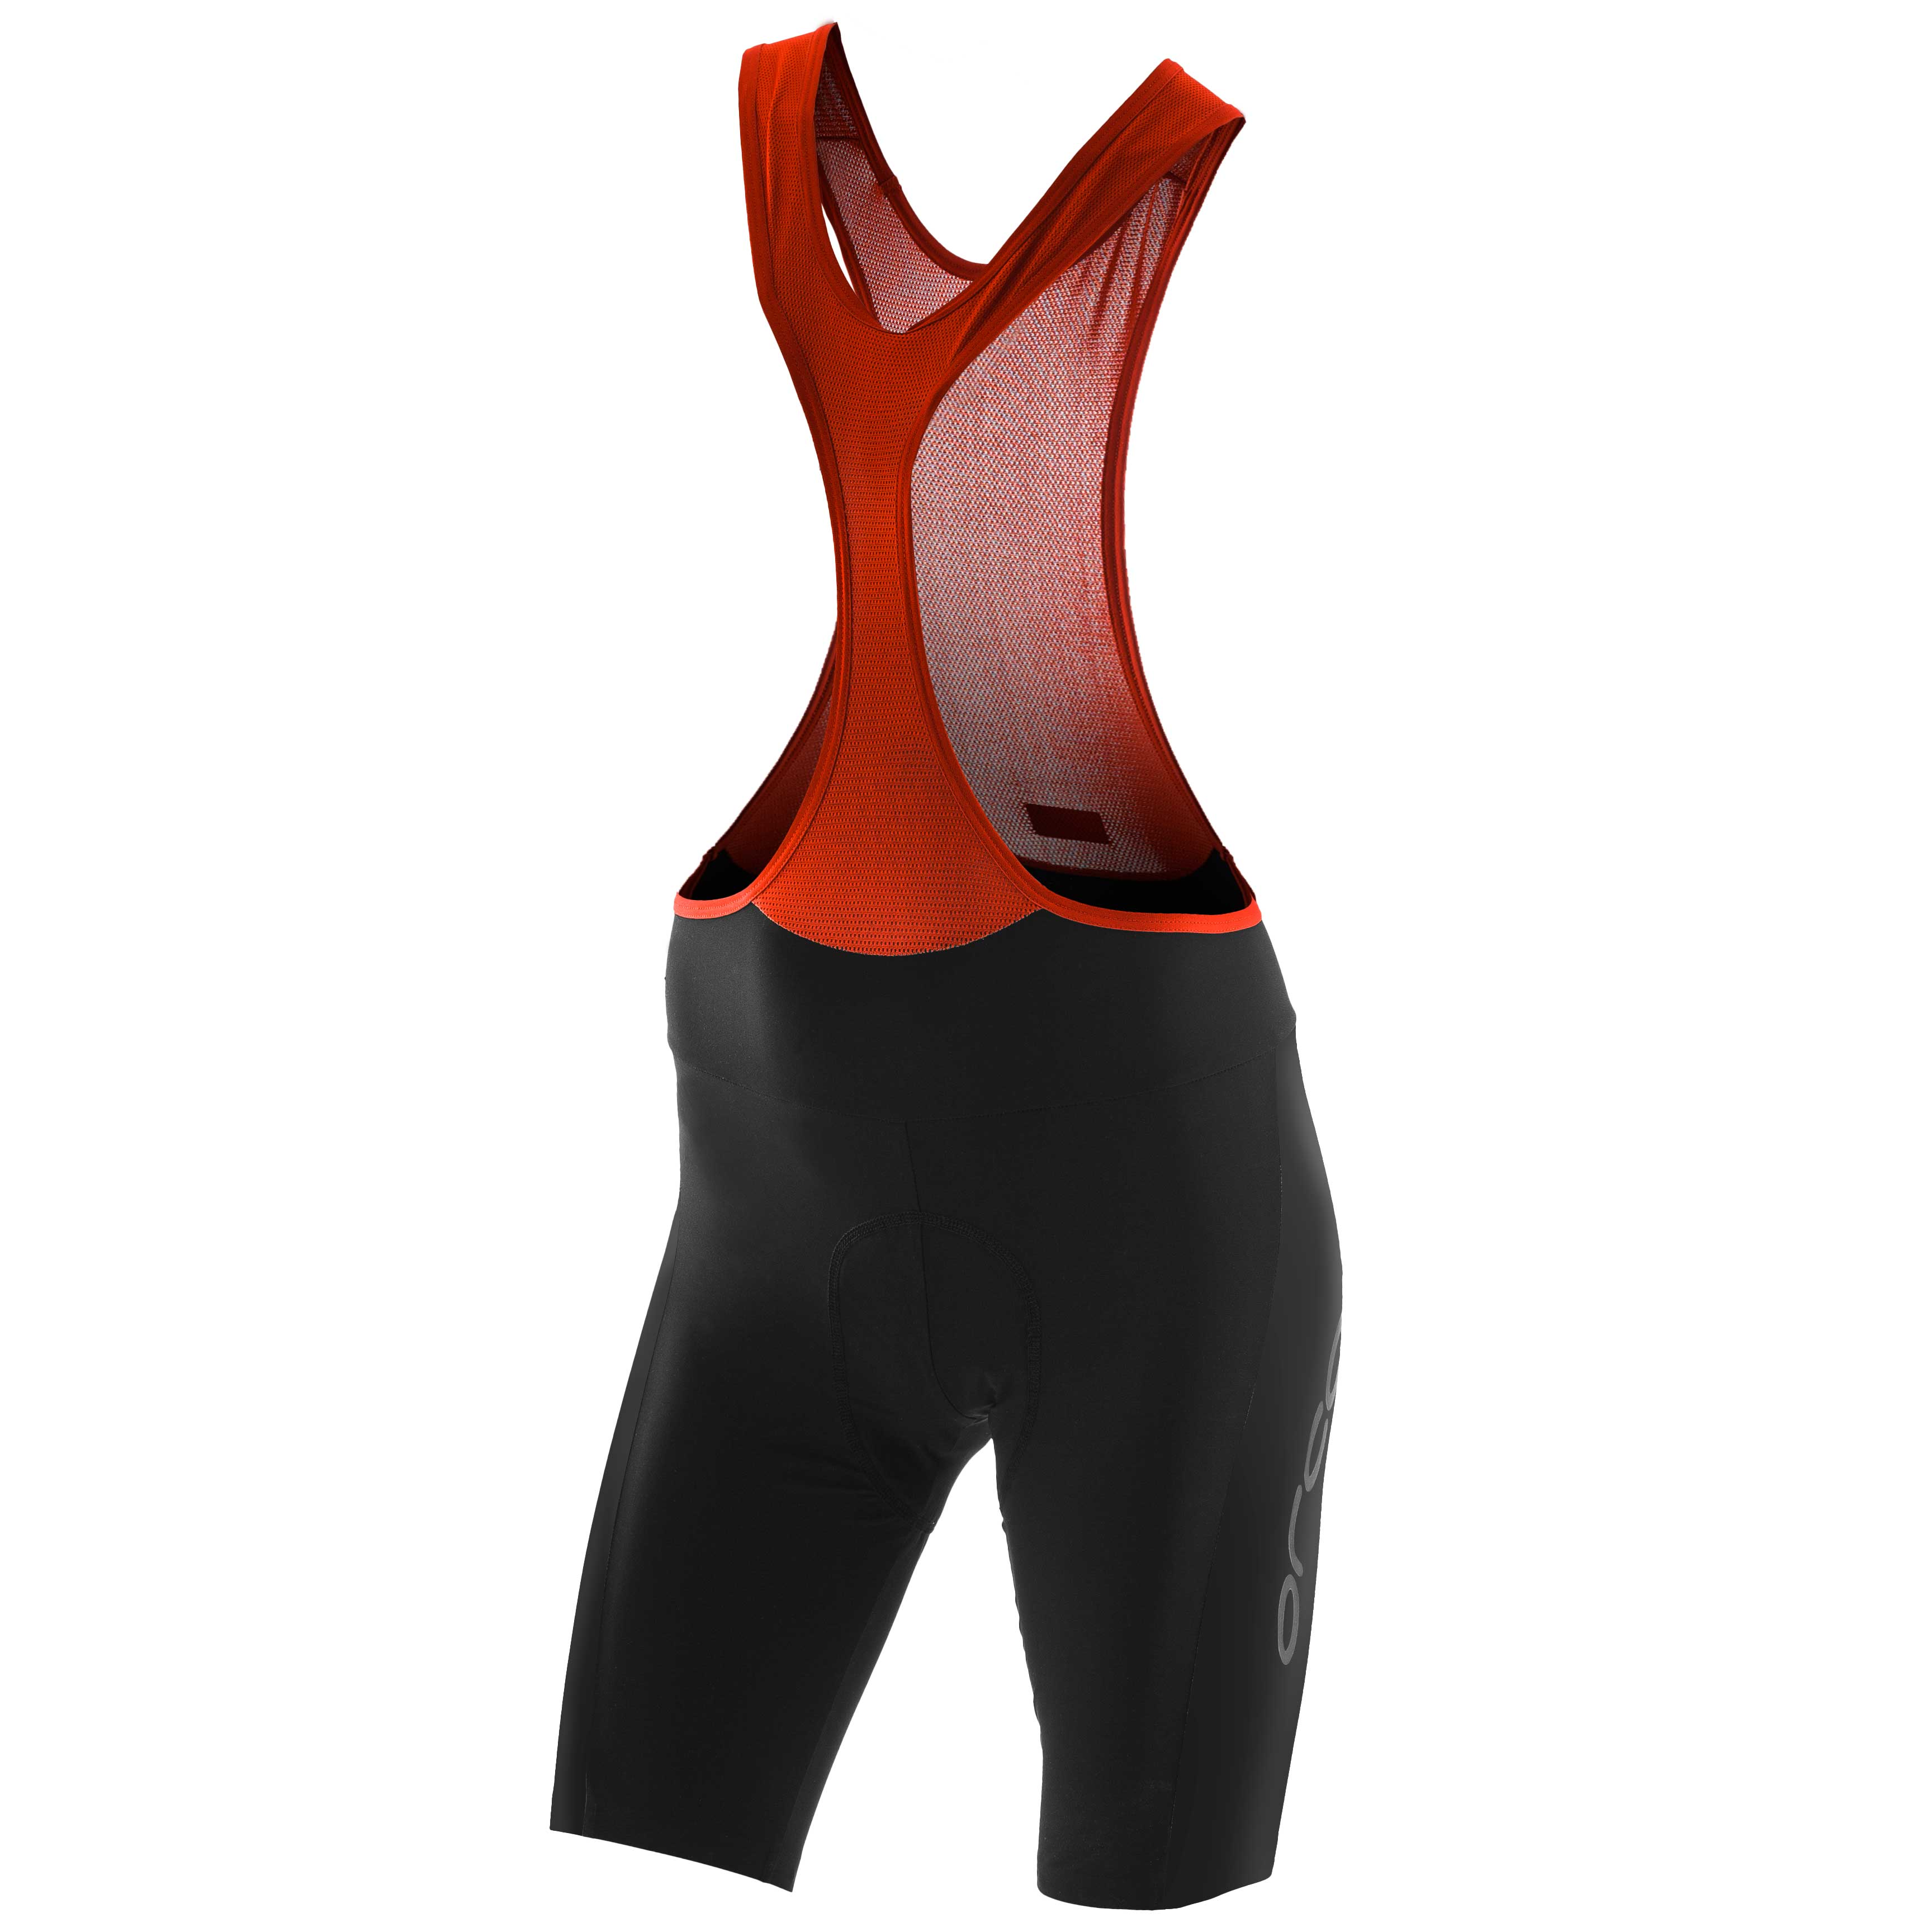 Orca Women's Cycling Bibshorts